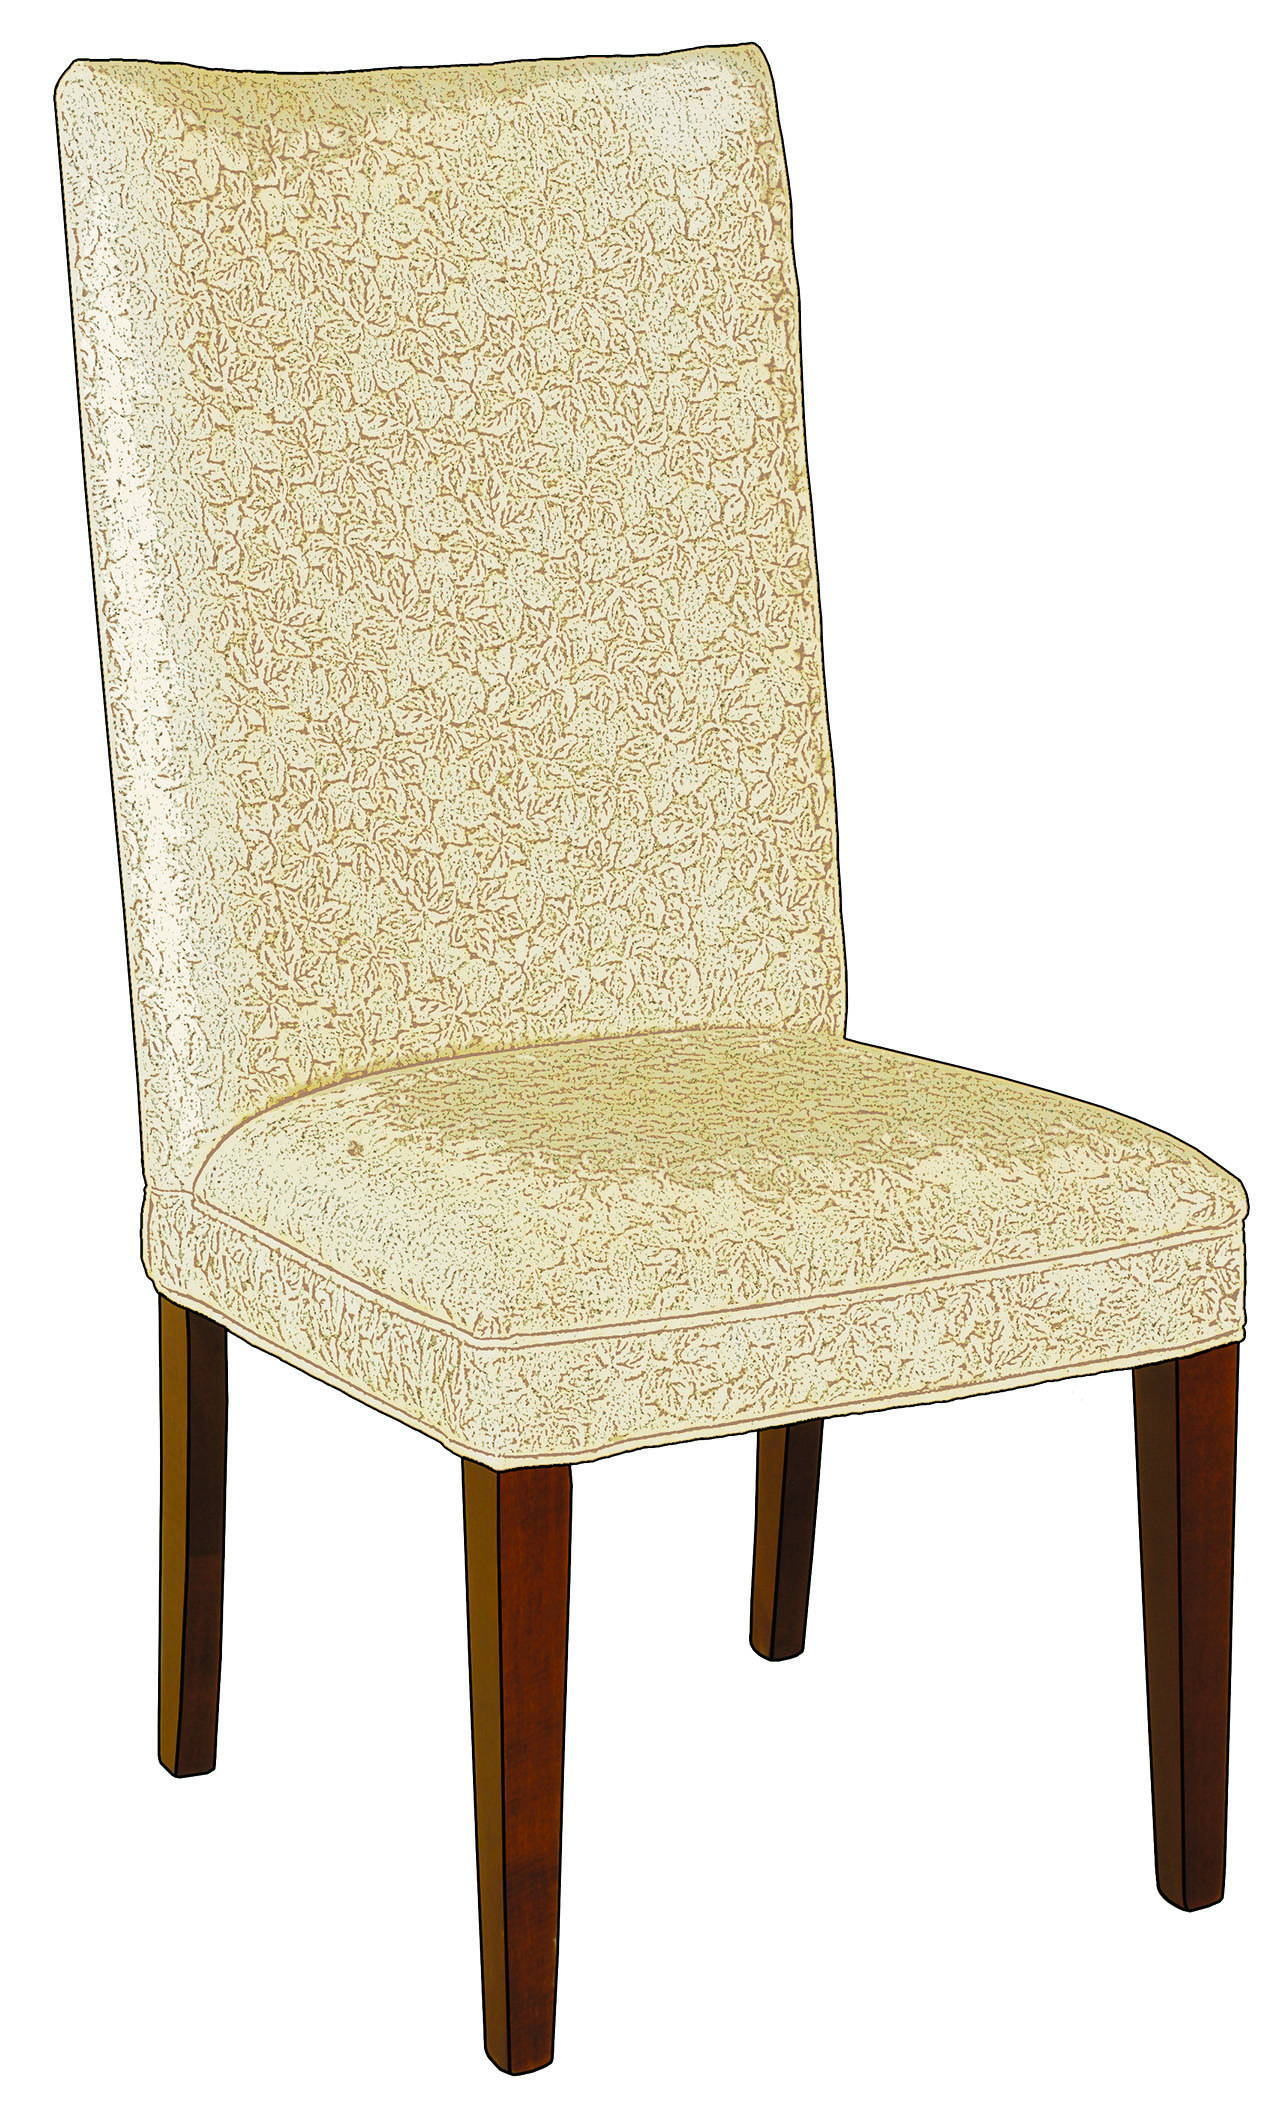 Sierra Solid Wood, Handcrafted Kitchen Chair or DIning Chair from Harvest Home Interiors Amish Furniture